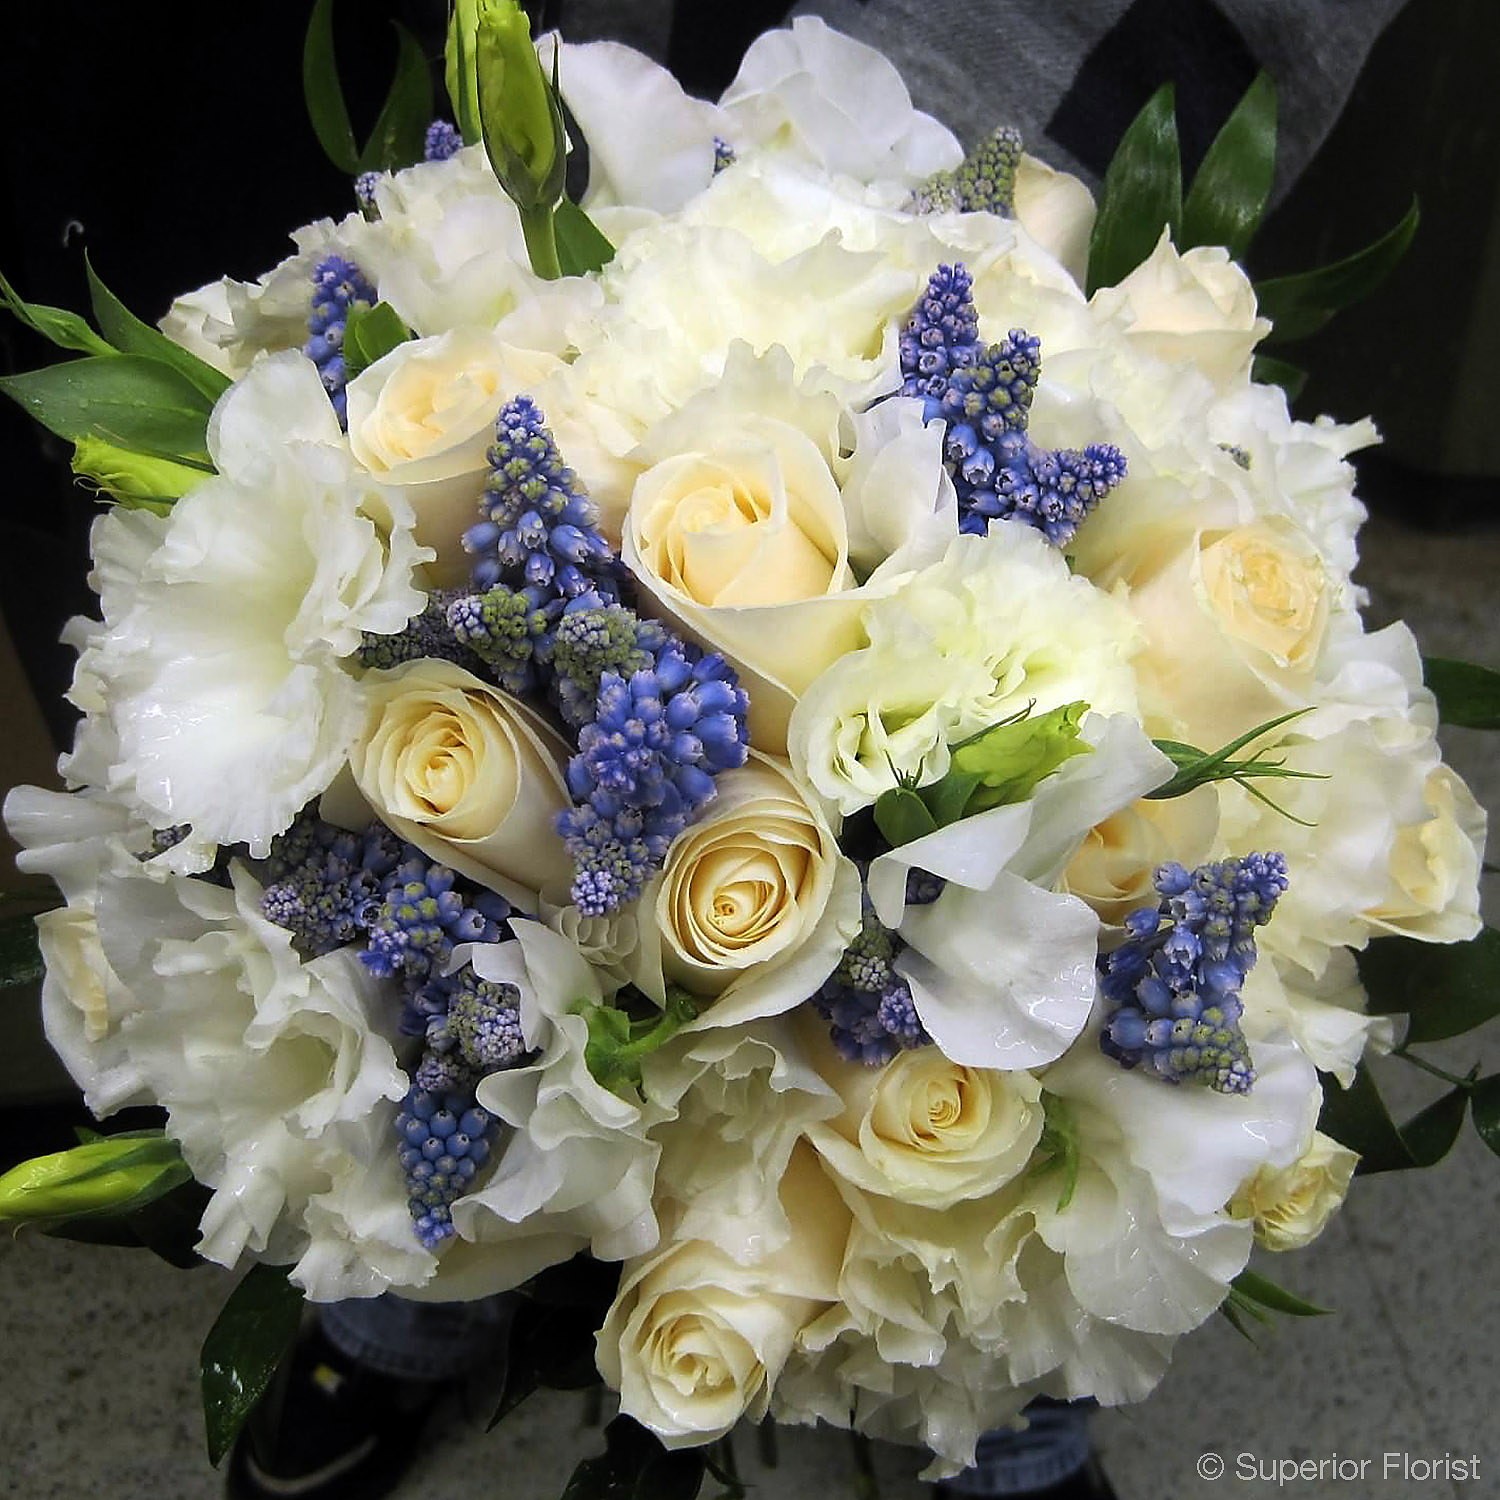 Superior Florist – Weddings – Personal Flowers: Hand tied bouquet of vendela roses, white Lisianthus and grape Hyacinth.